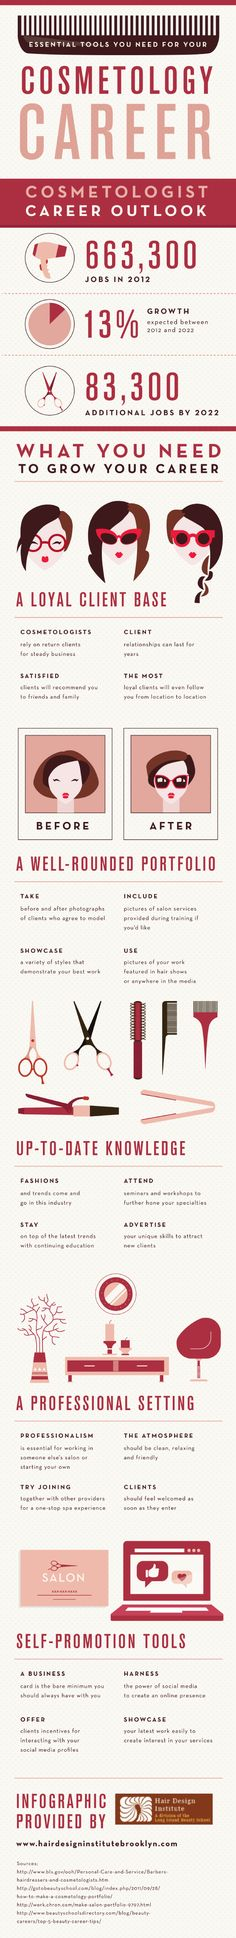 Many savvy cosmetology school graduates succeed in their career field with self-promotional tools. A premier cosmetology school in Brooklyn recommends carrying business cards at all times, interacting with prospective clients on social media, and showcasing their skills. To find out more, review this helpful infographic.